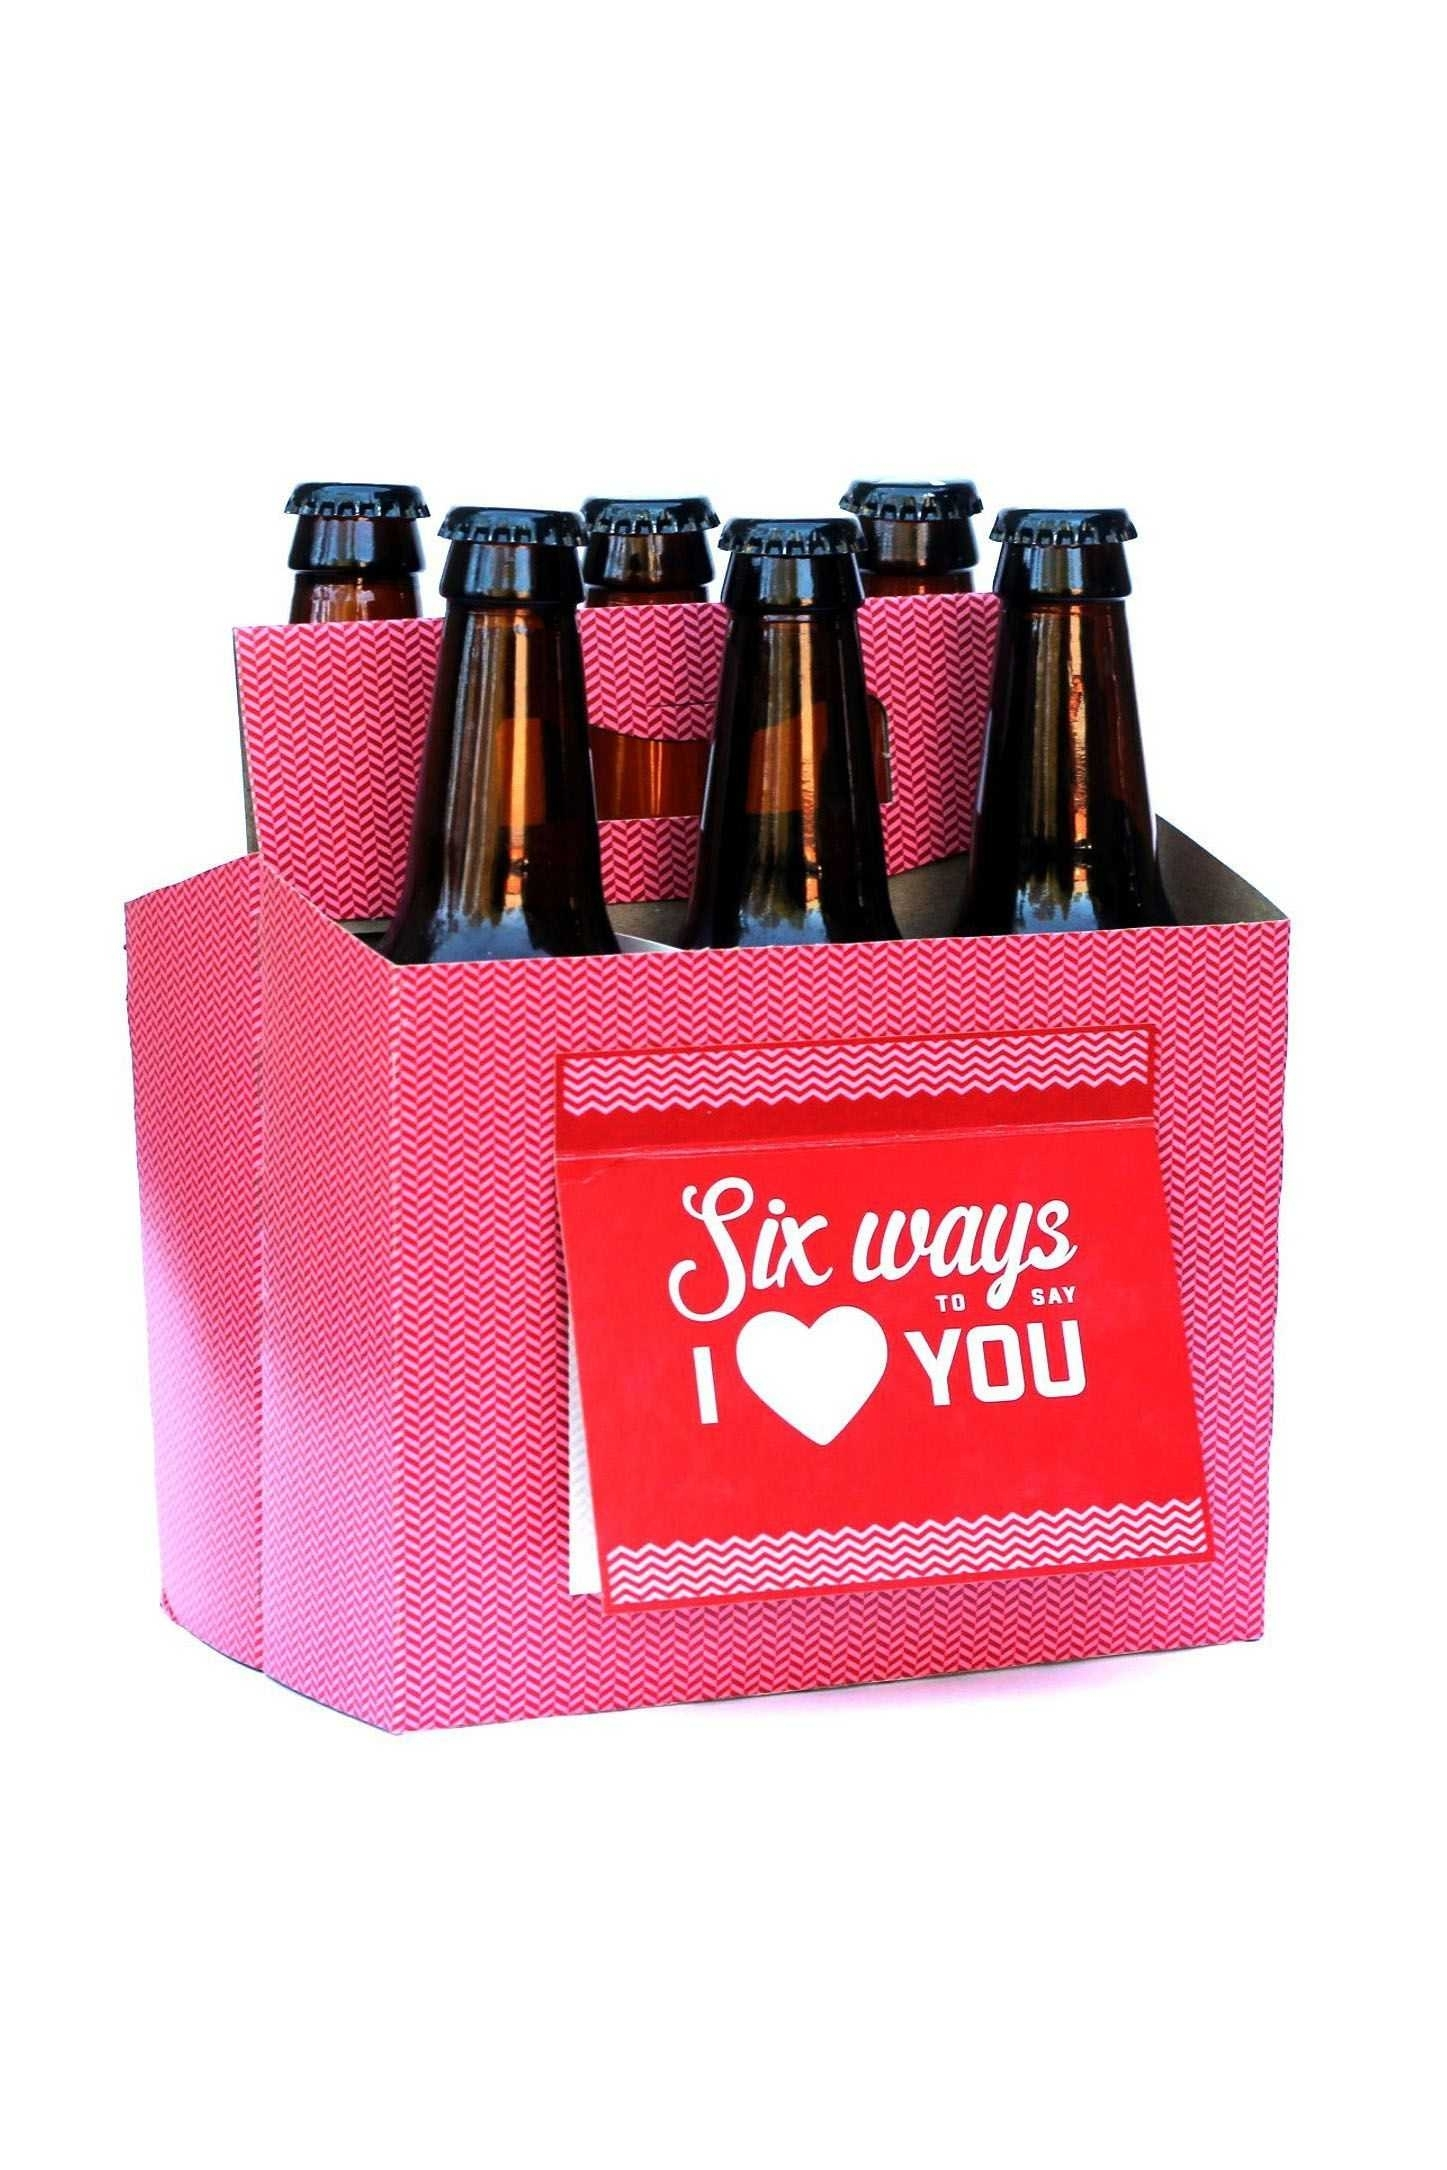 10 Unique Valentine Day Gifts For Him Ideas %name 2020